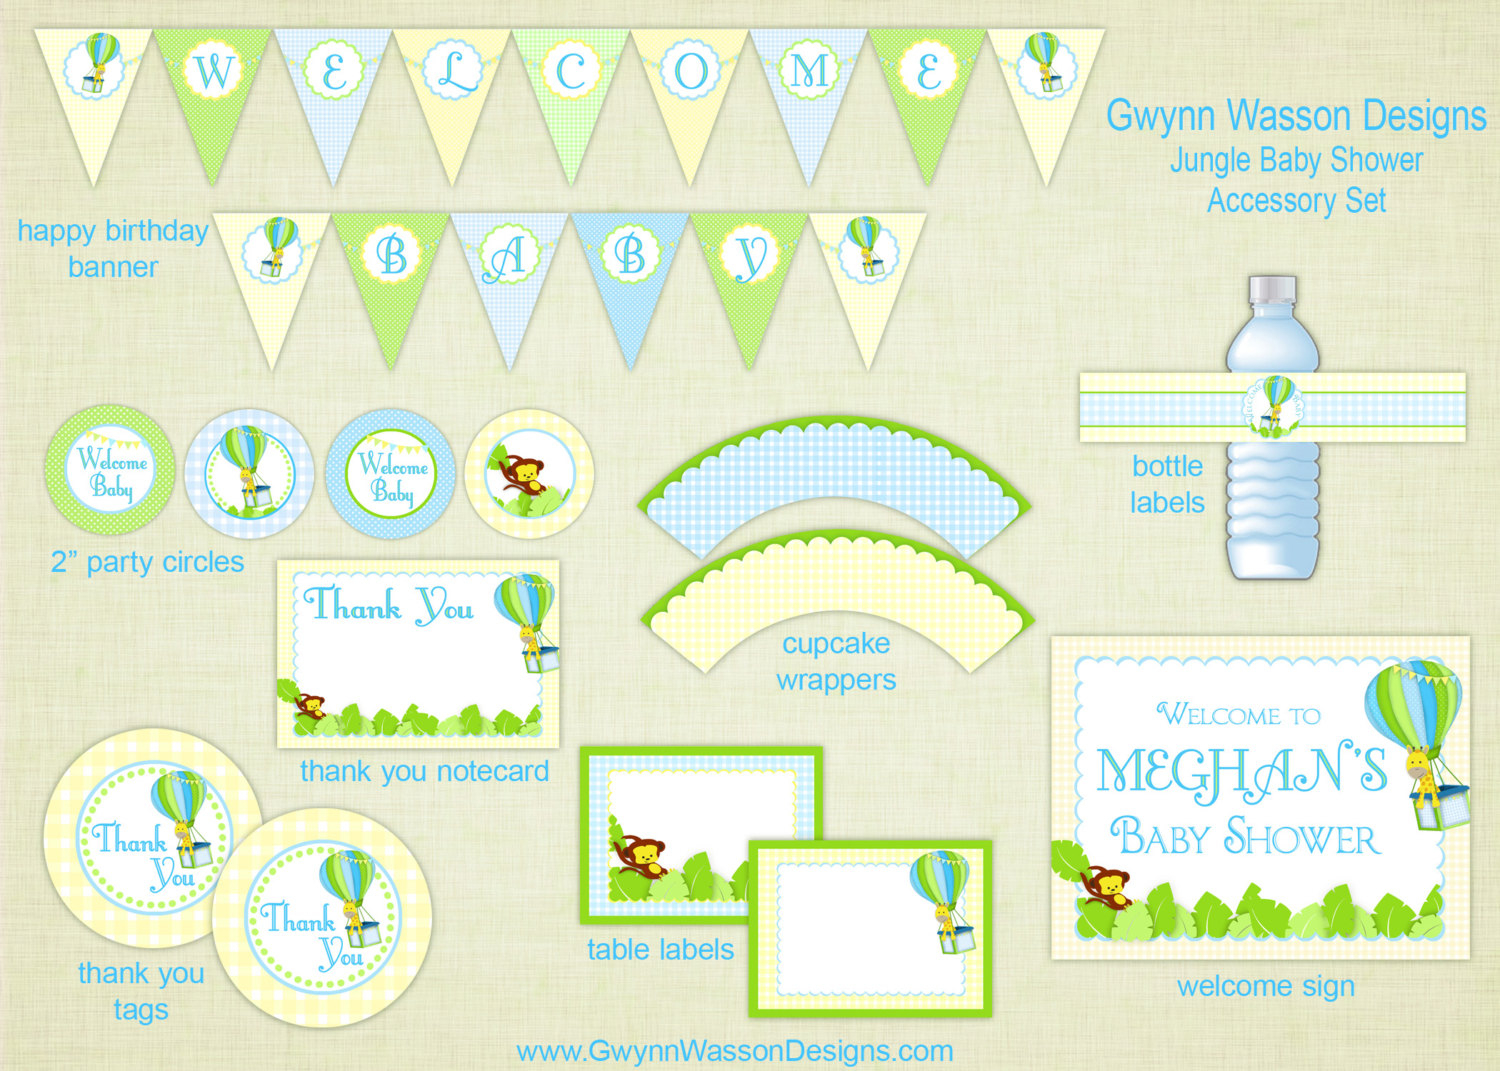 Free Printables For Baby Shower Decorations - Baby Shower Ideas - Free Printable Baby Shower Decorations For A Boy